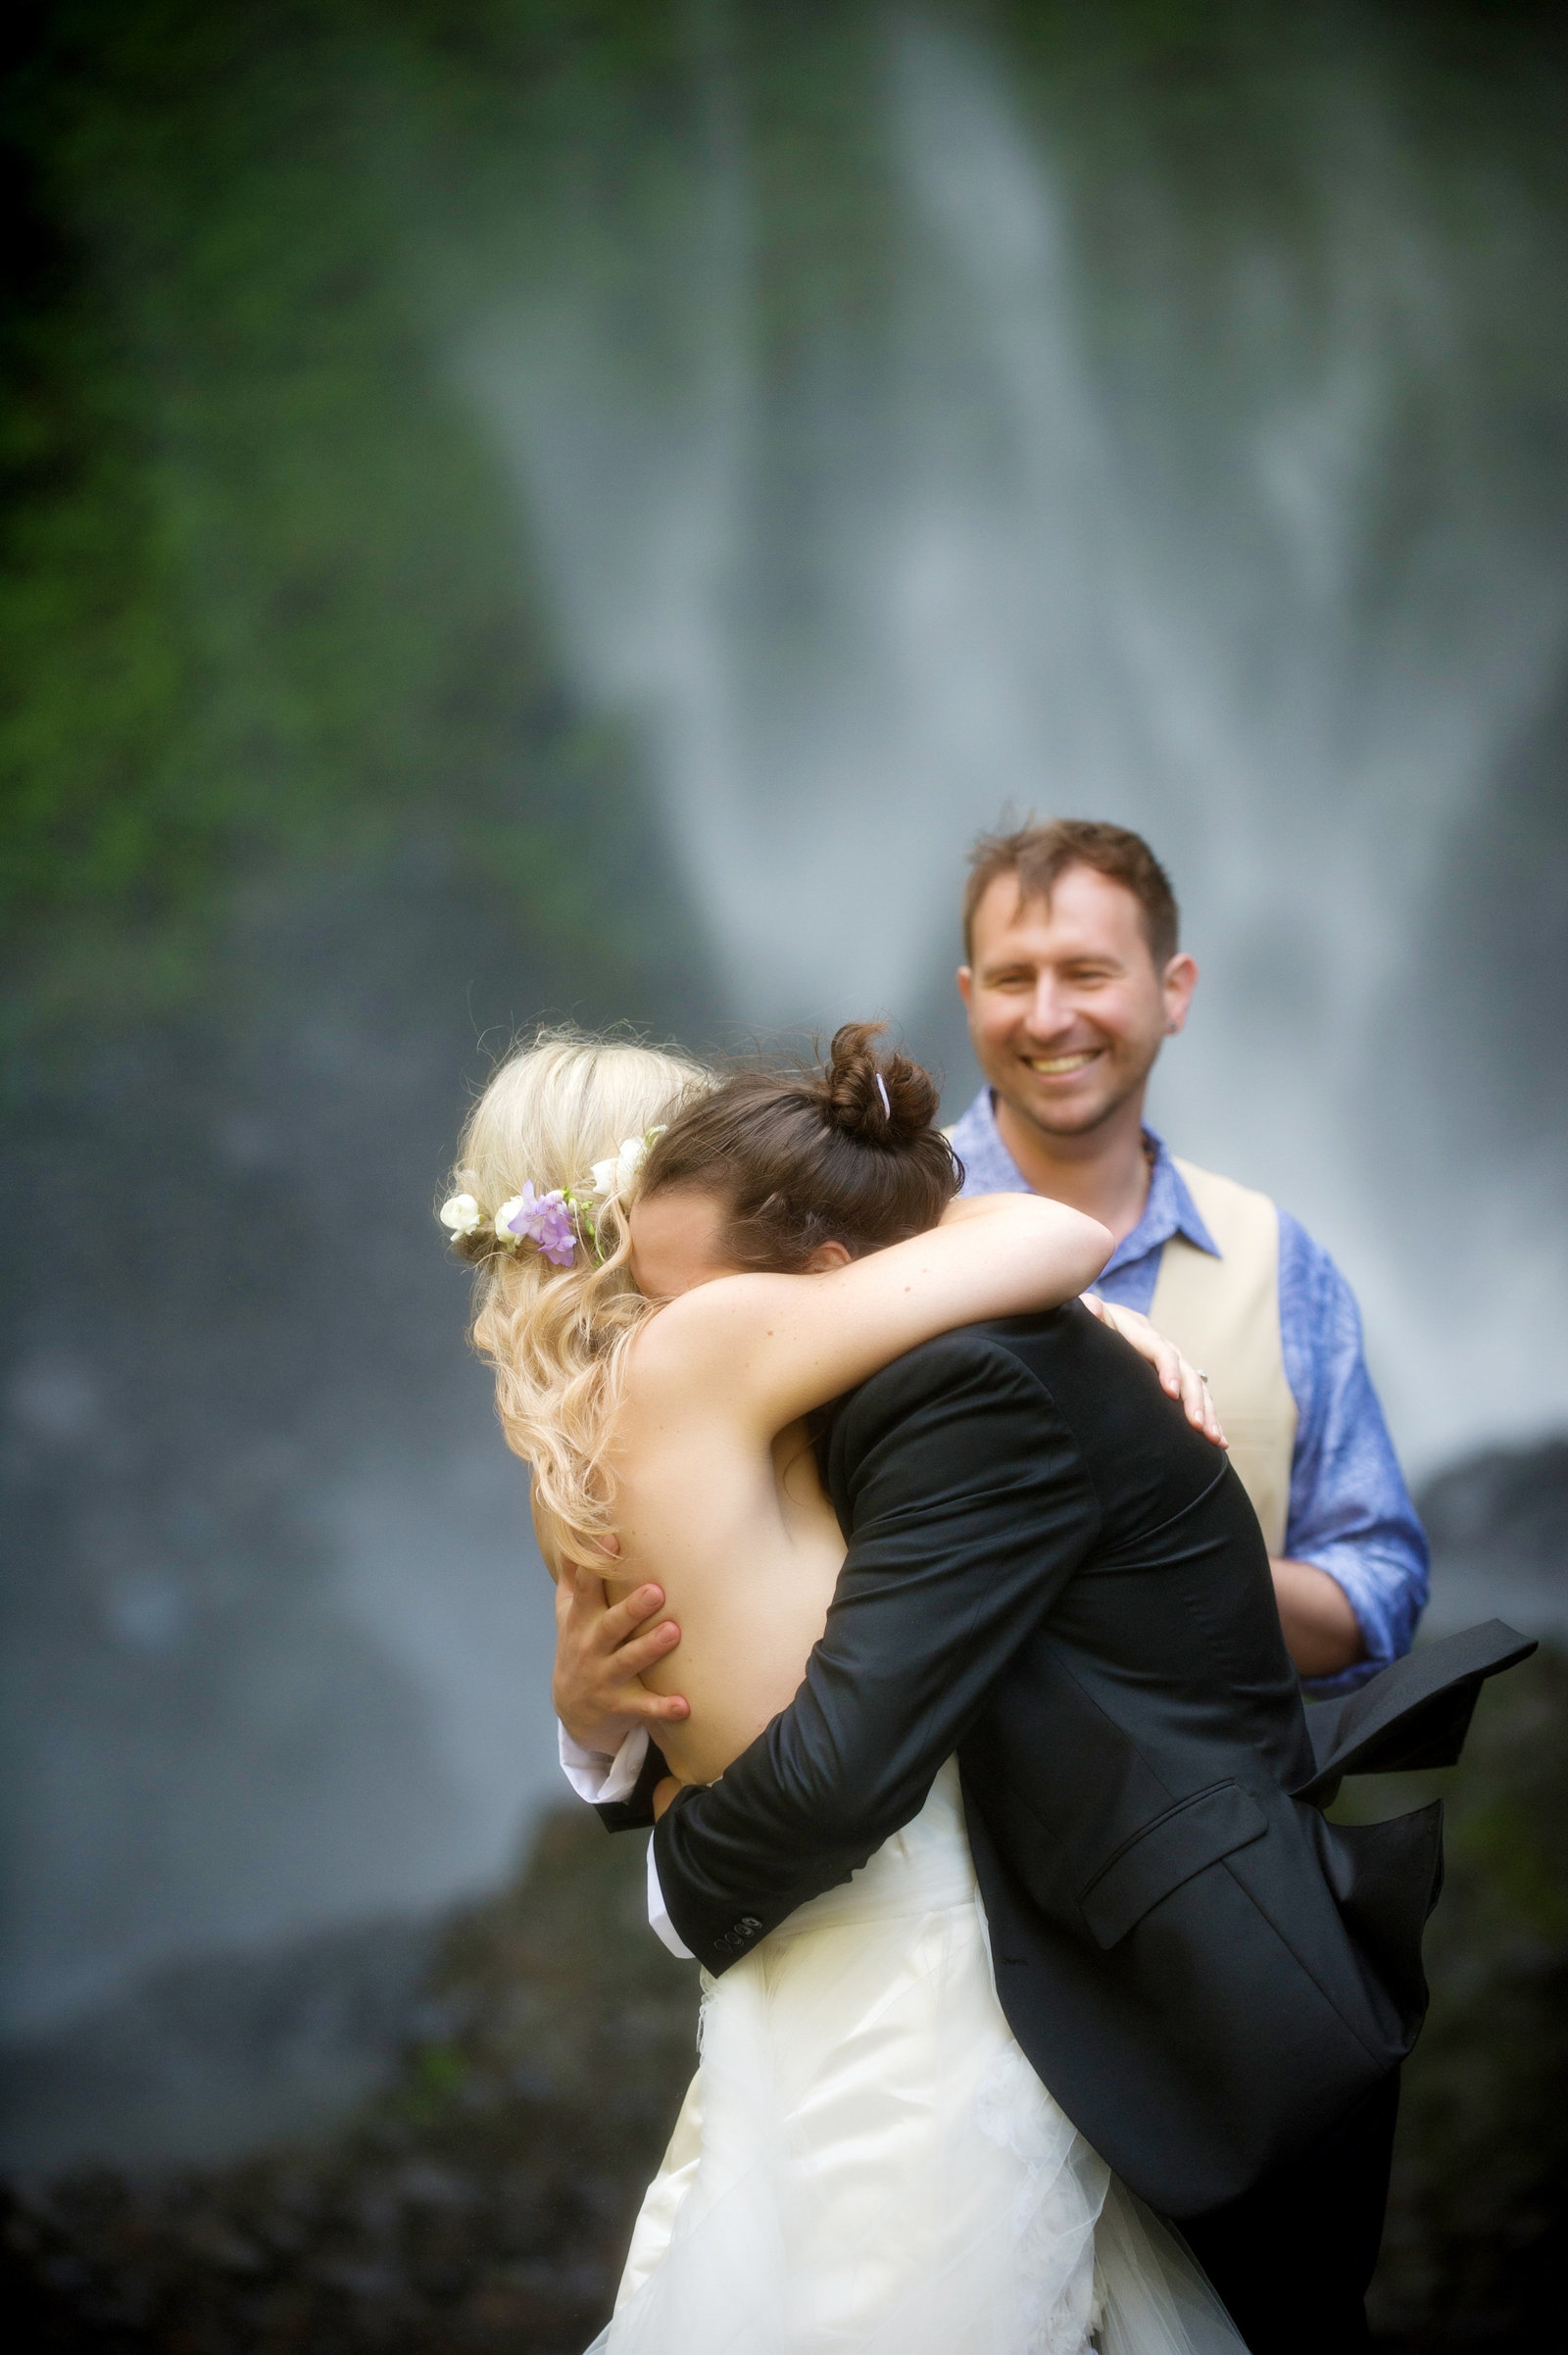 Crystal Genes Photography LATOURELL FALLS ELOPEMENT170421-144935